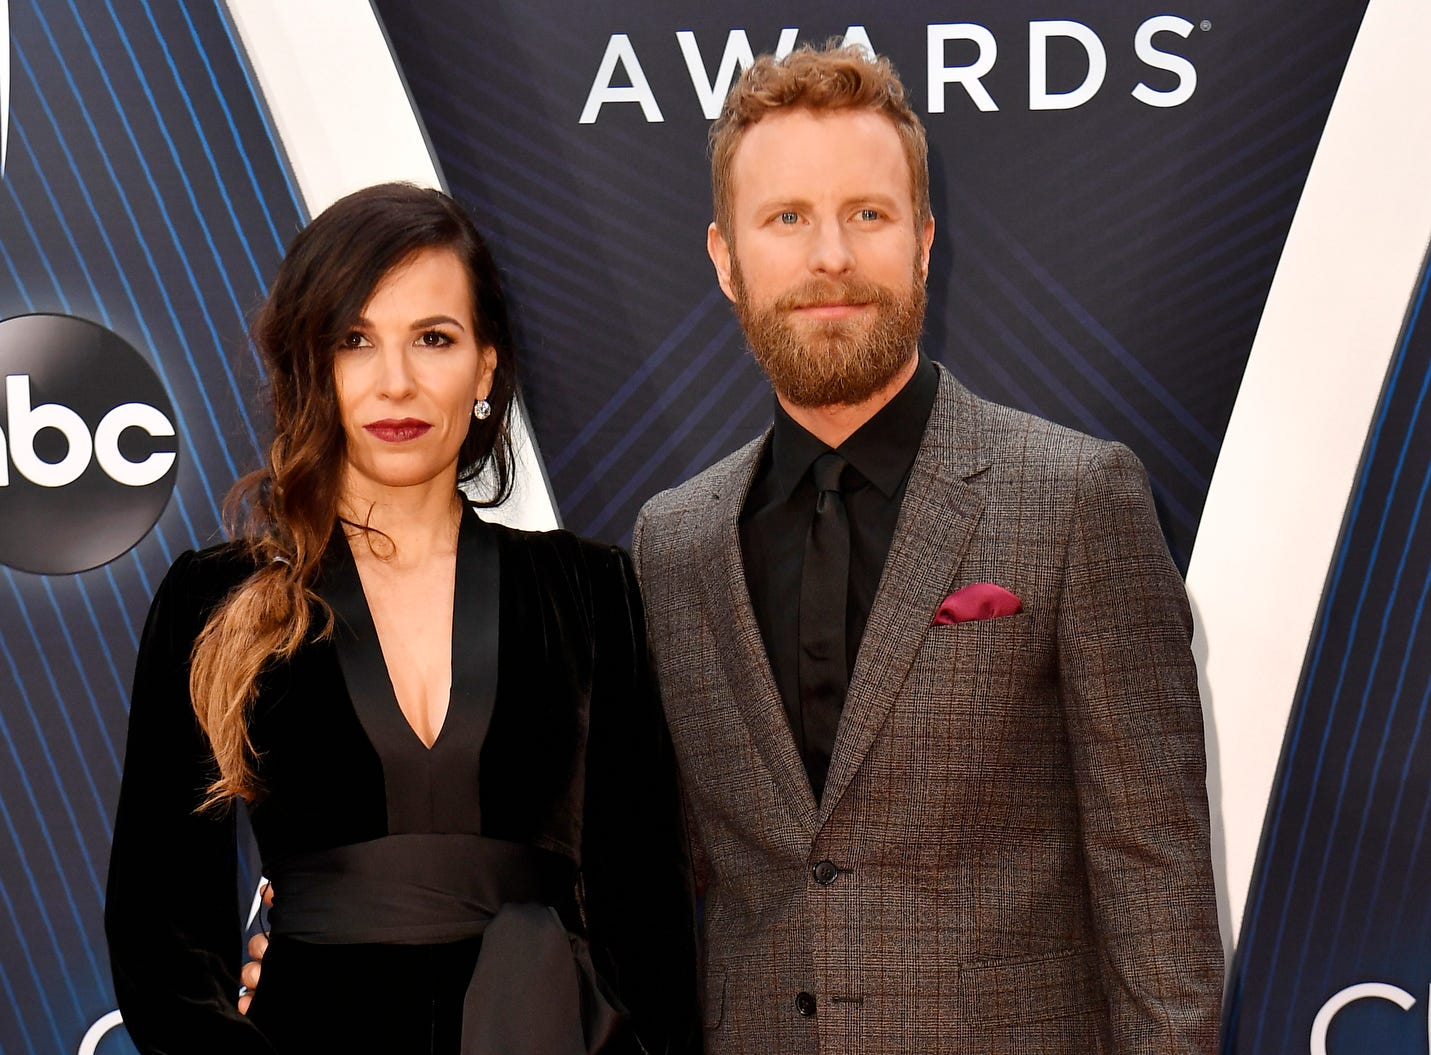 Dierks Bentley and wife Cassidy Black